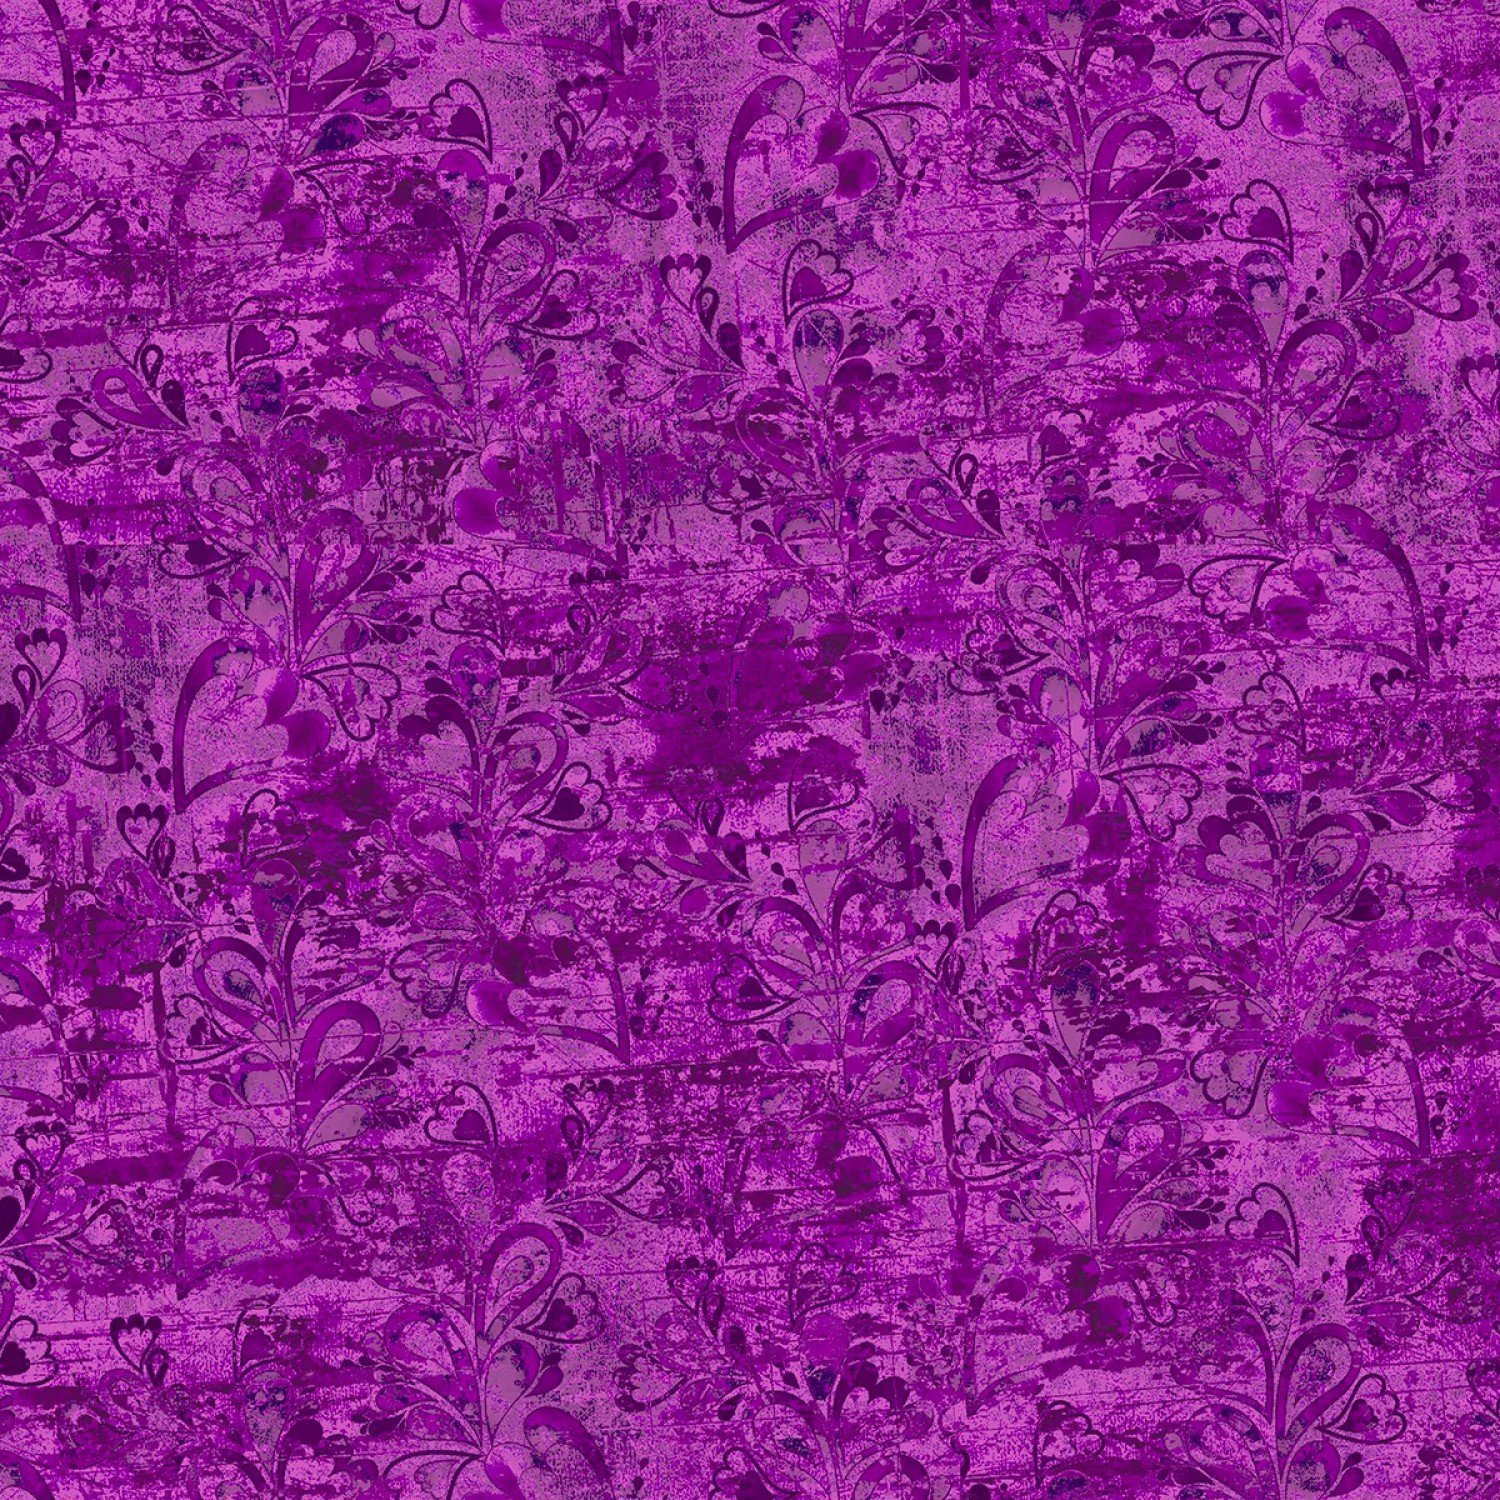 In the Meadow 14494-Purple by Connie Haley for 3 Wishes Fabrics